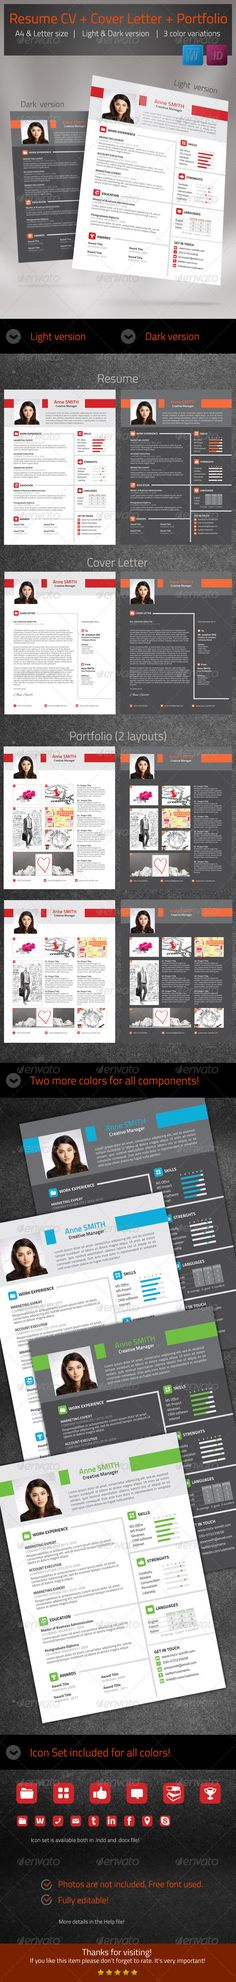 Modern Resume Template Words, Colors and Page sizes - e resume